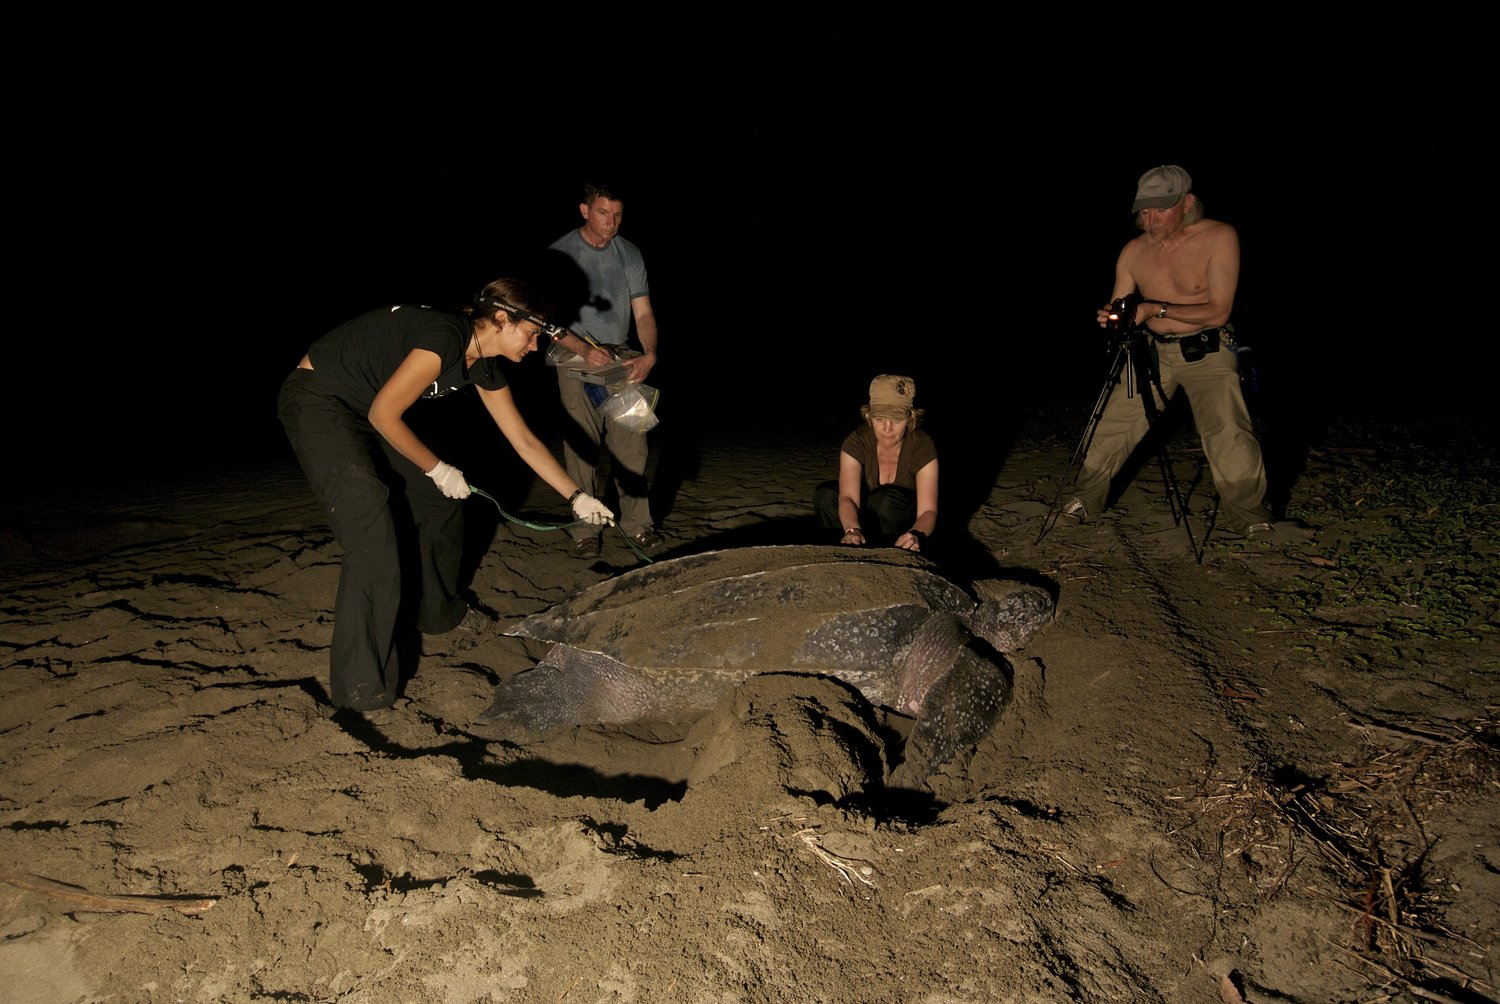 AS SHE LAYS HER EGGS, VOLUNTEERS TAKE THE MEASUREMENTS AND OTHER STATISTICS OF A LEATHERBACK TURTLE. IMAGE:  ©NEIL EVER OSBORNE , WILDLIFE & NATURE PHOTOGRAPHER